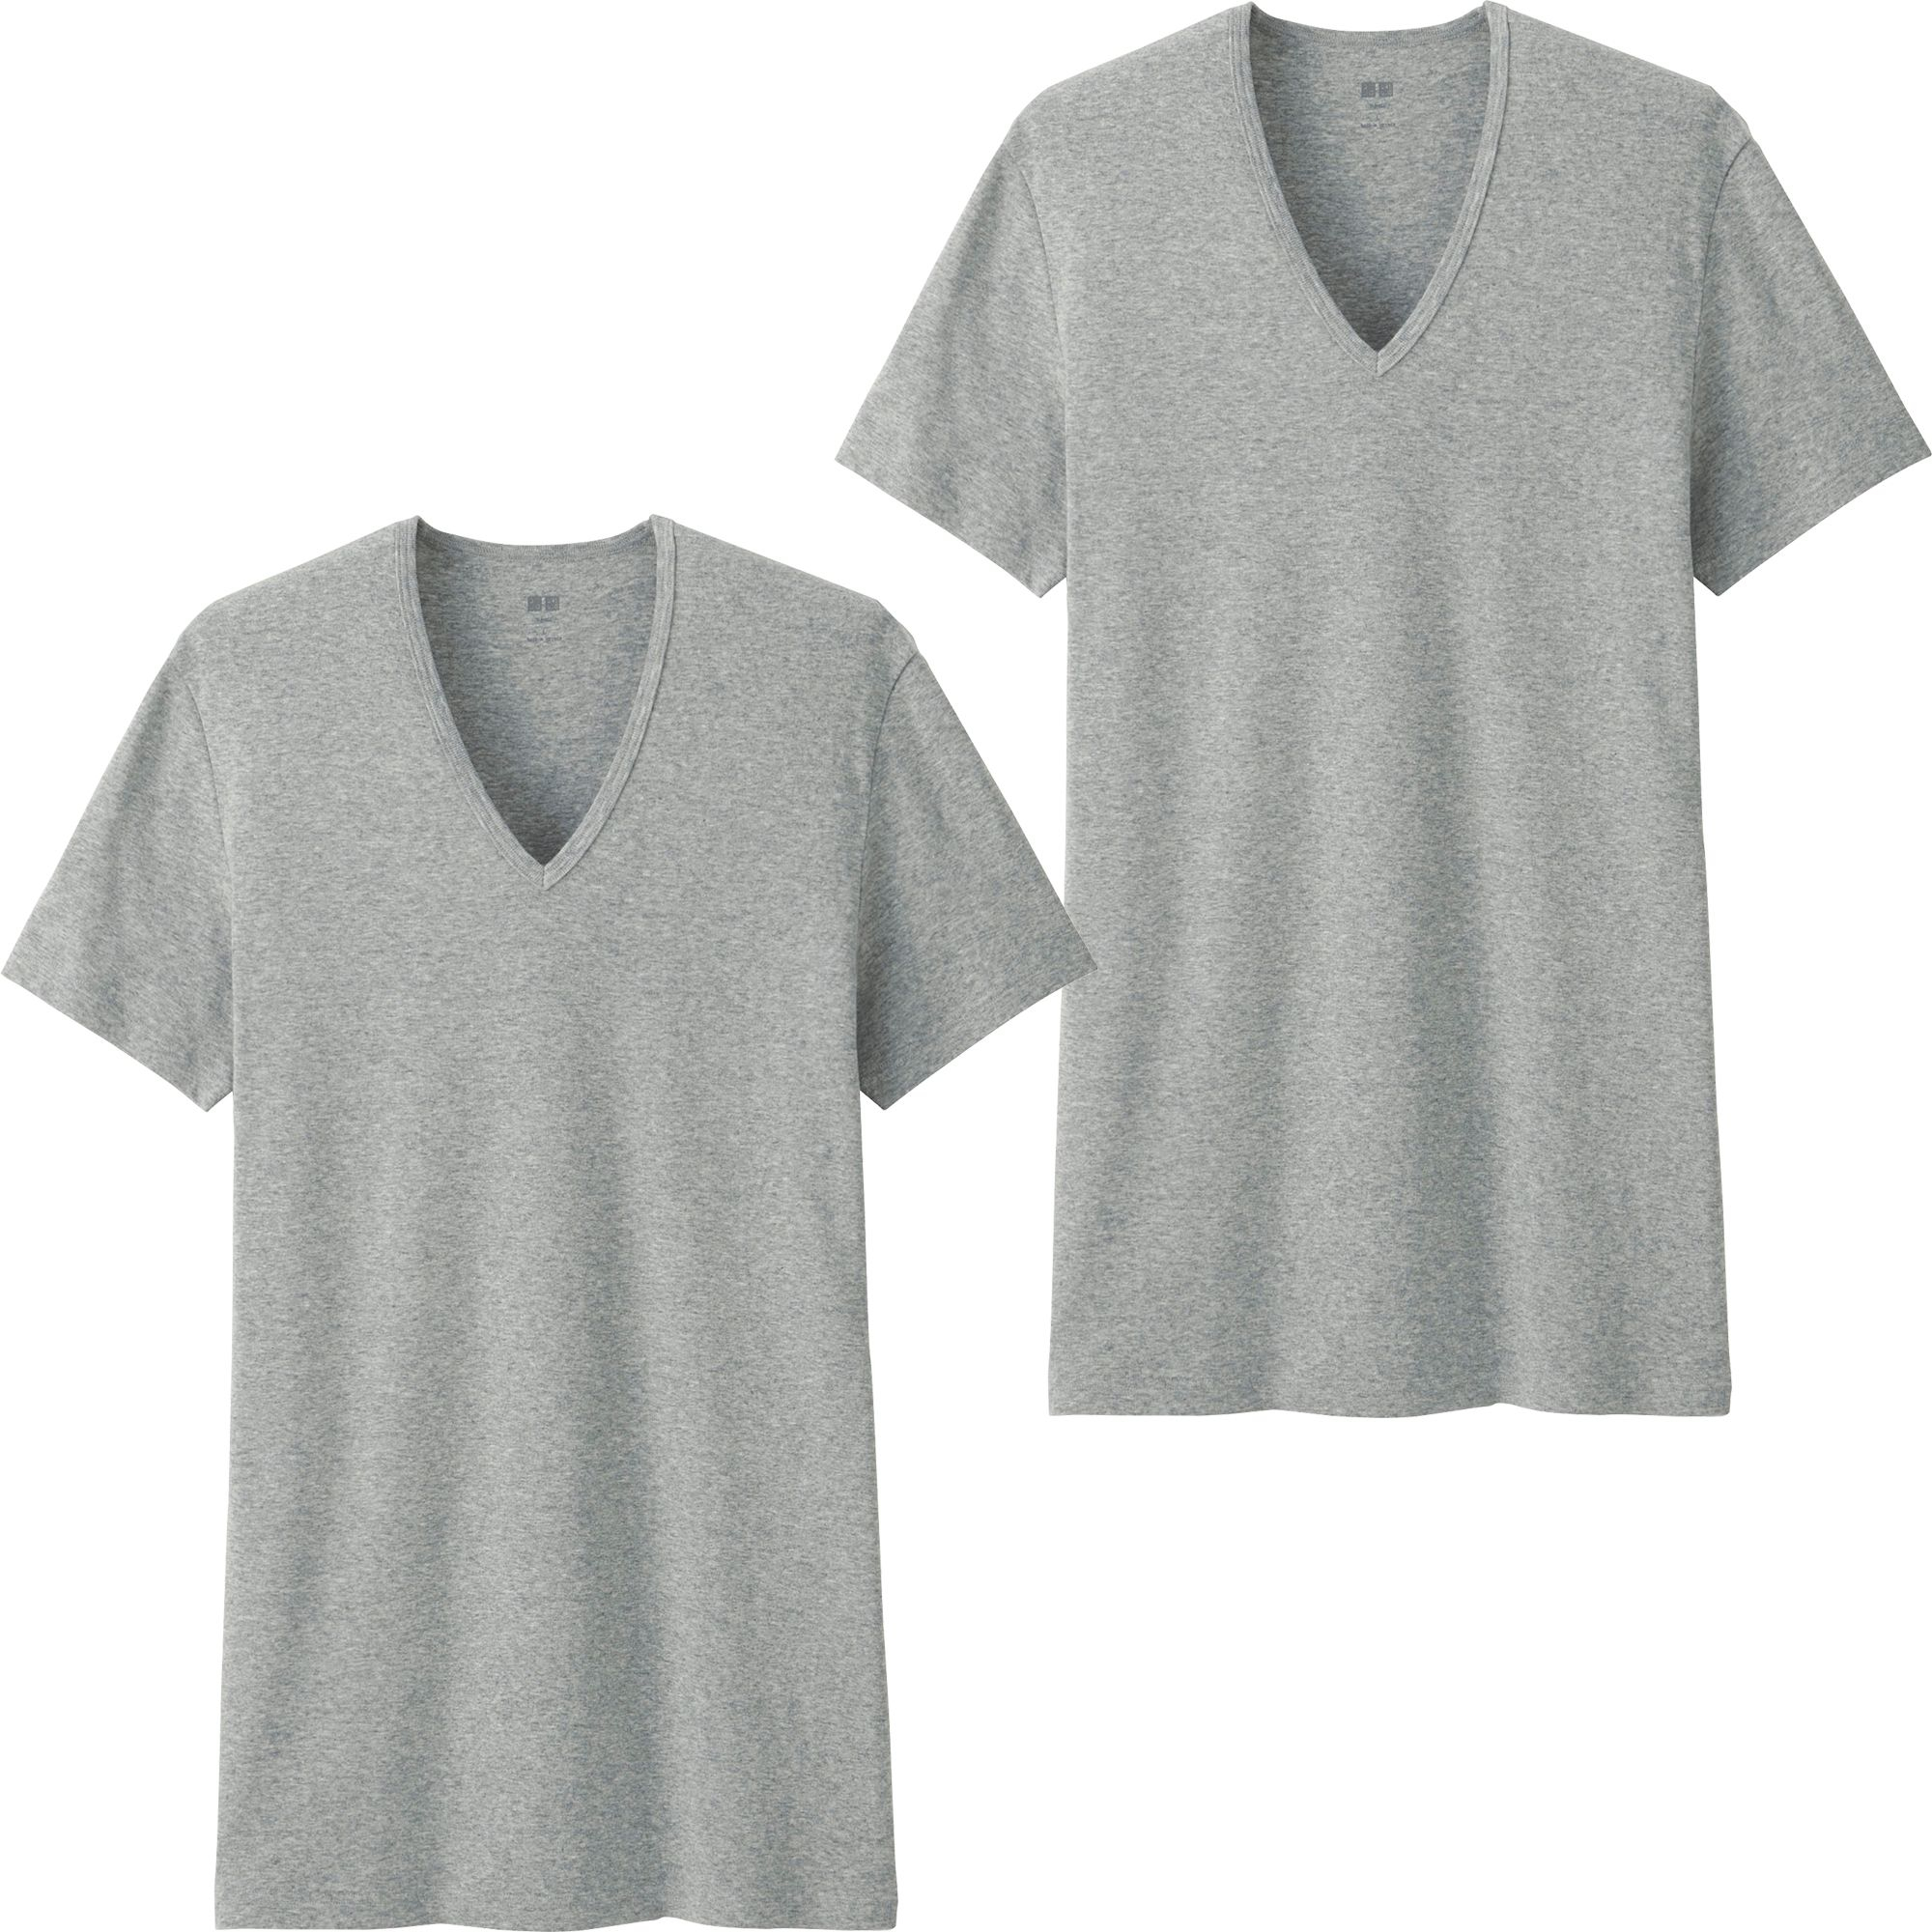 Uniqlo men 39 s supima r cotton t shirts 2 pack in gray for for Uniqlo t shirt sizing